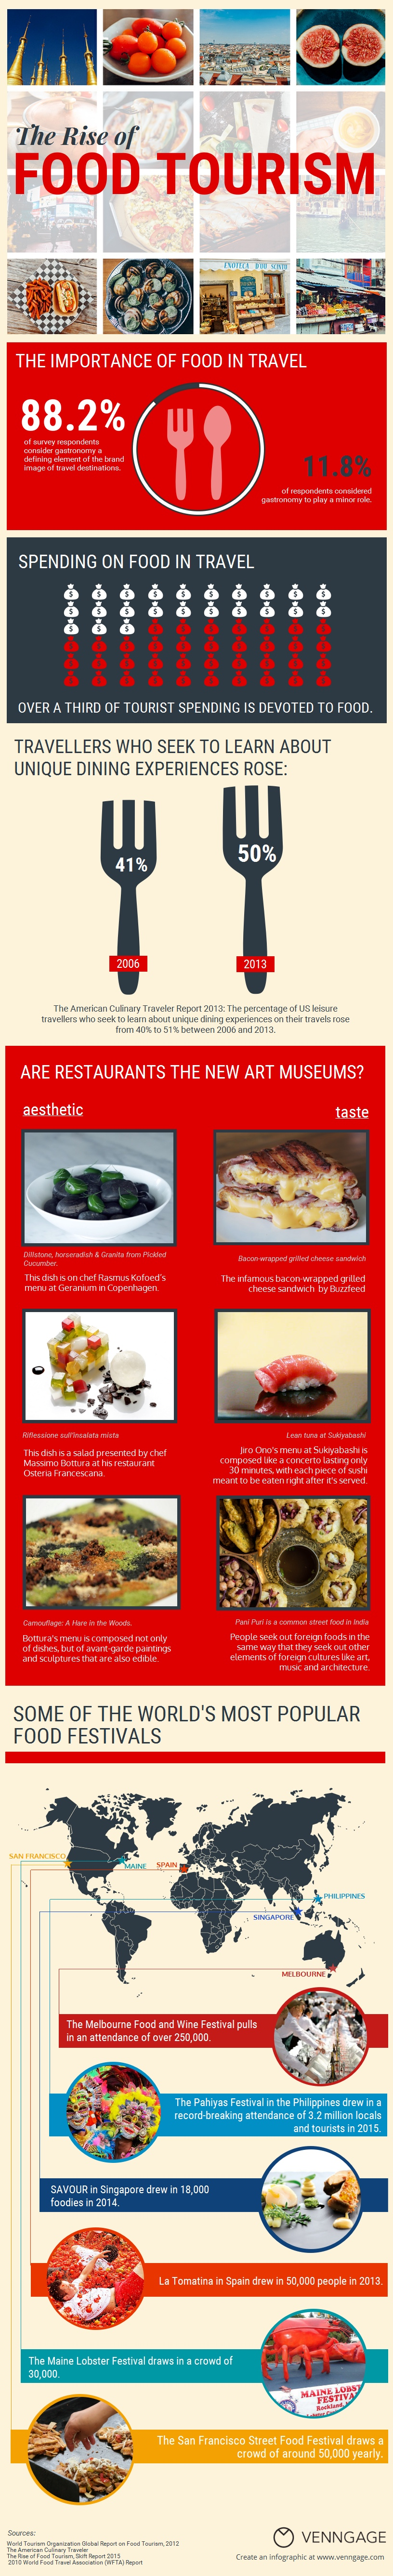 Food Tourism Infographic